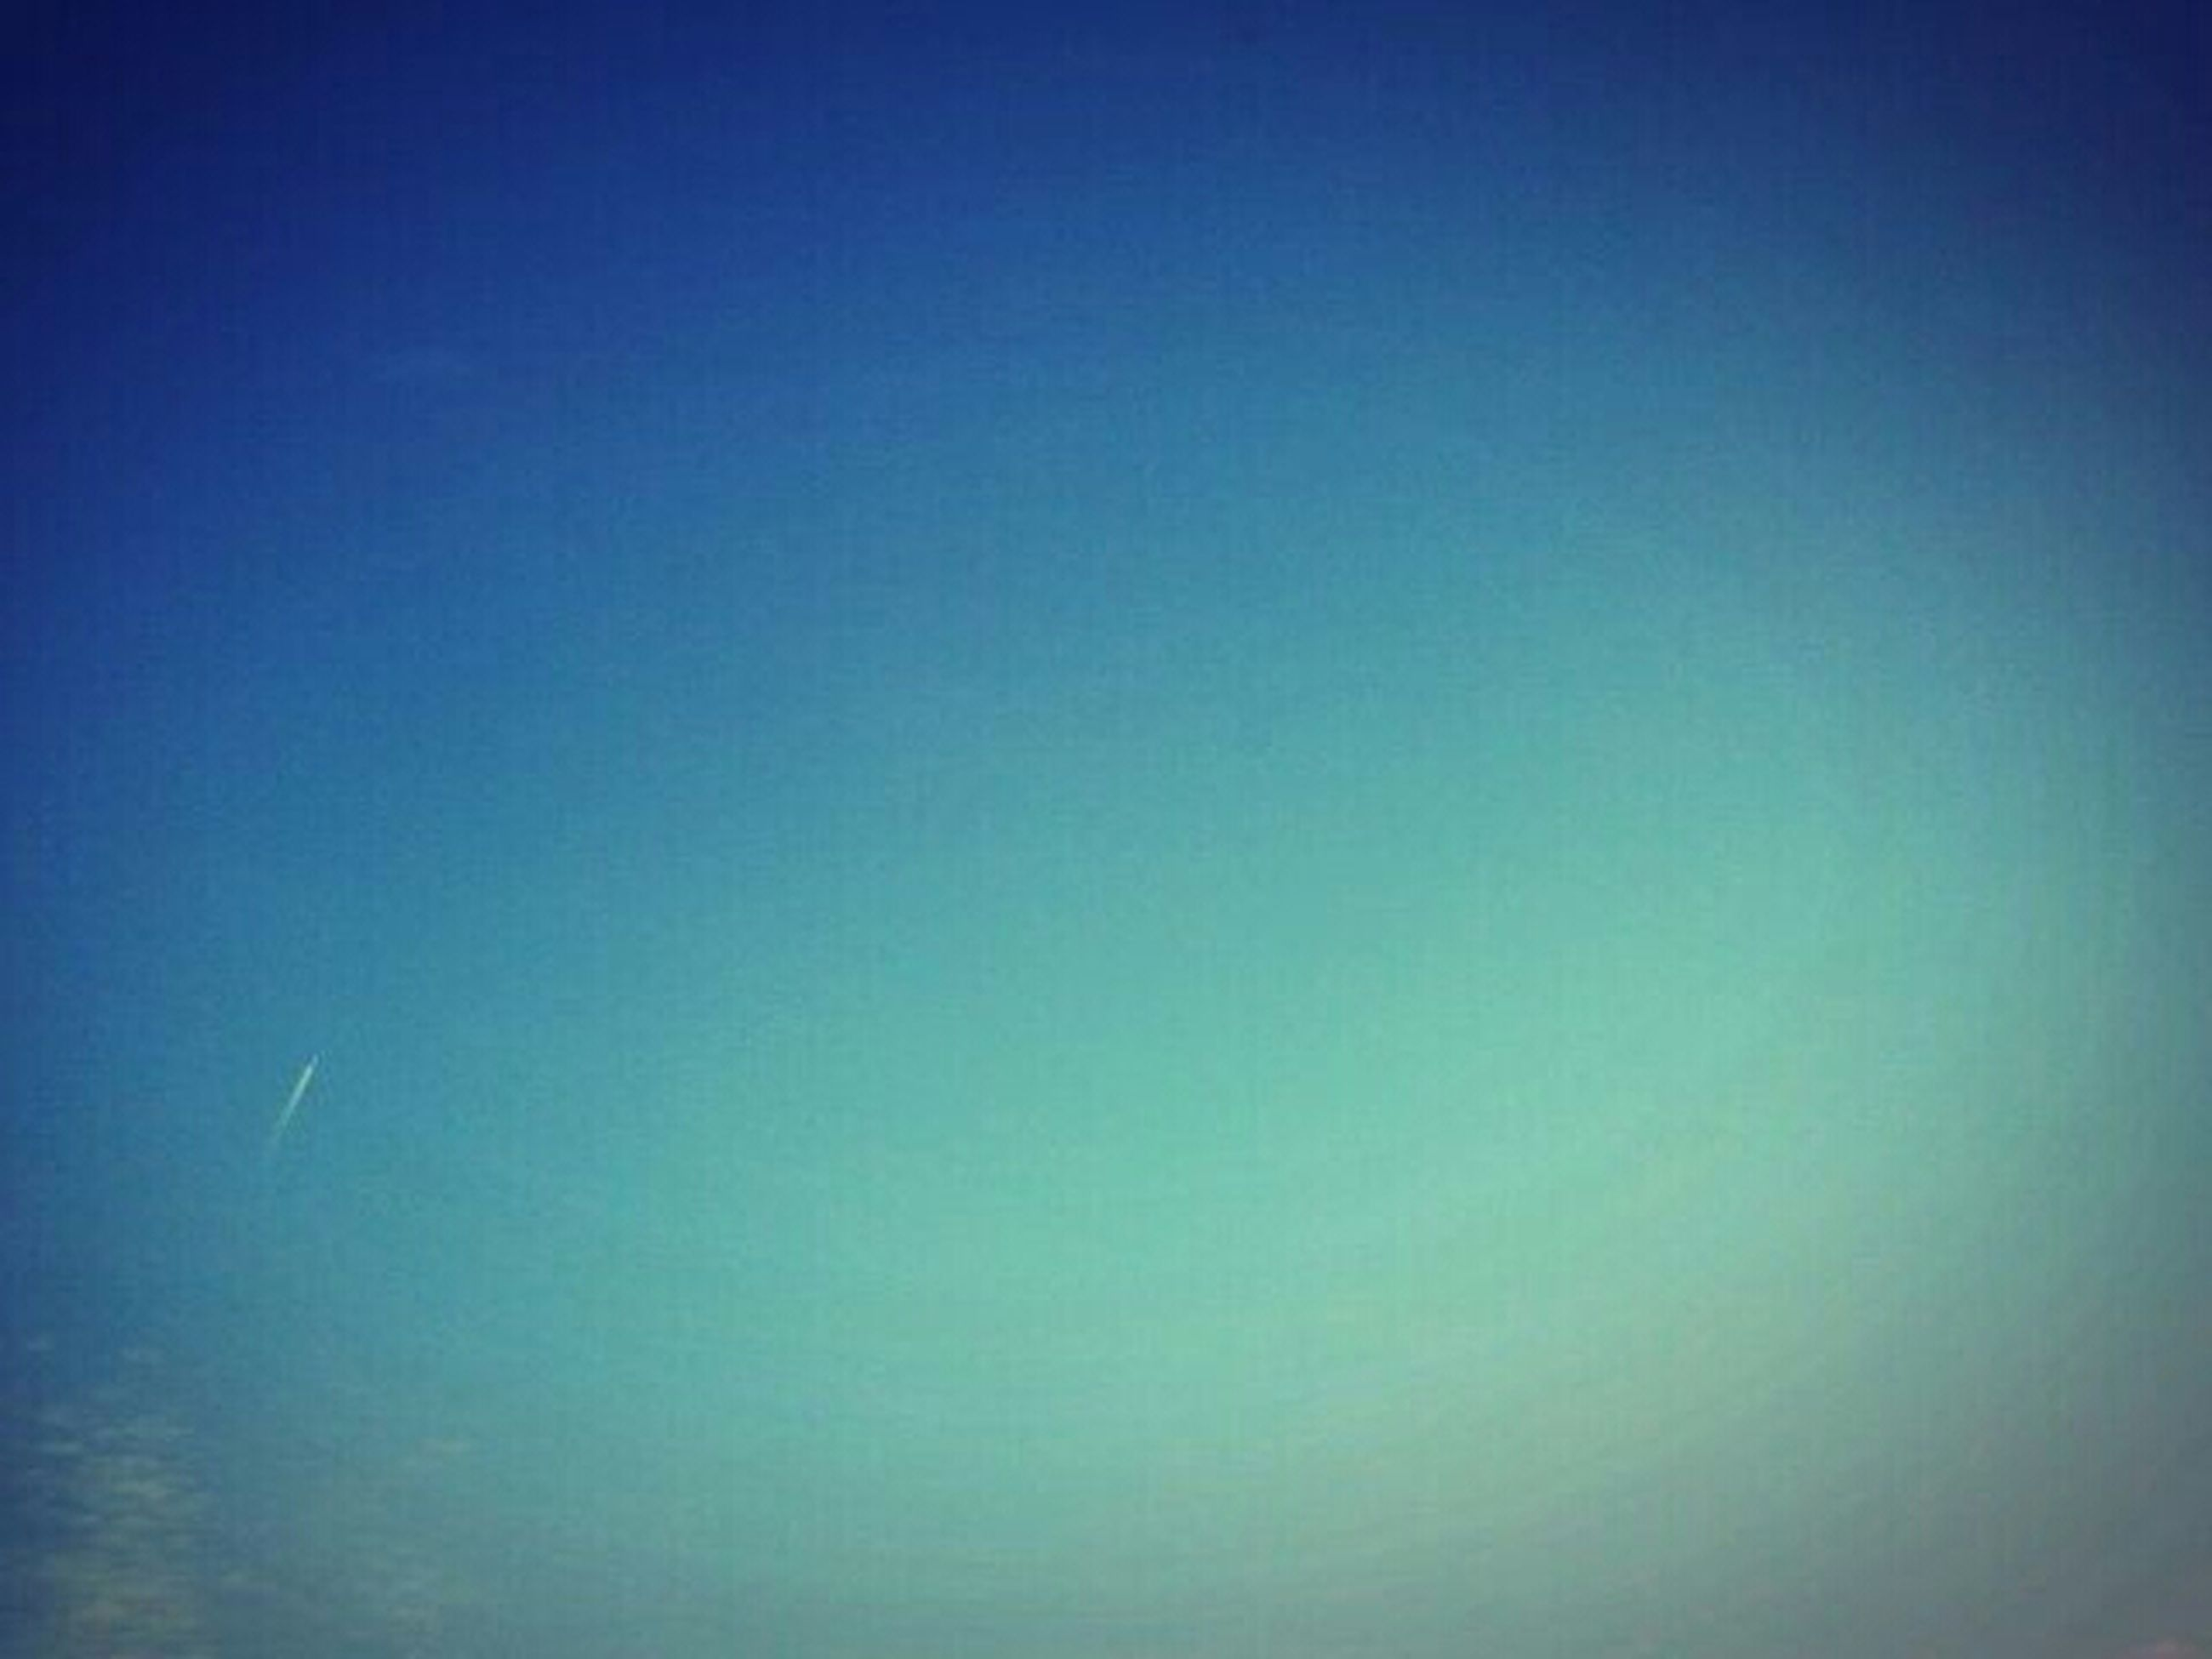 blue, copy space, clear sky, low angle view, tranquility, beauty in nature, scenics, tranquil scene, nature, idyllic, moon, no people, outdoors, sky, day, sunlight, vignette, backgrounds, majestic, sky only